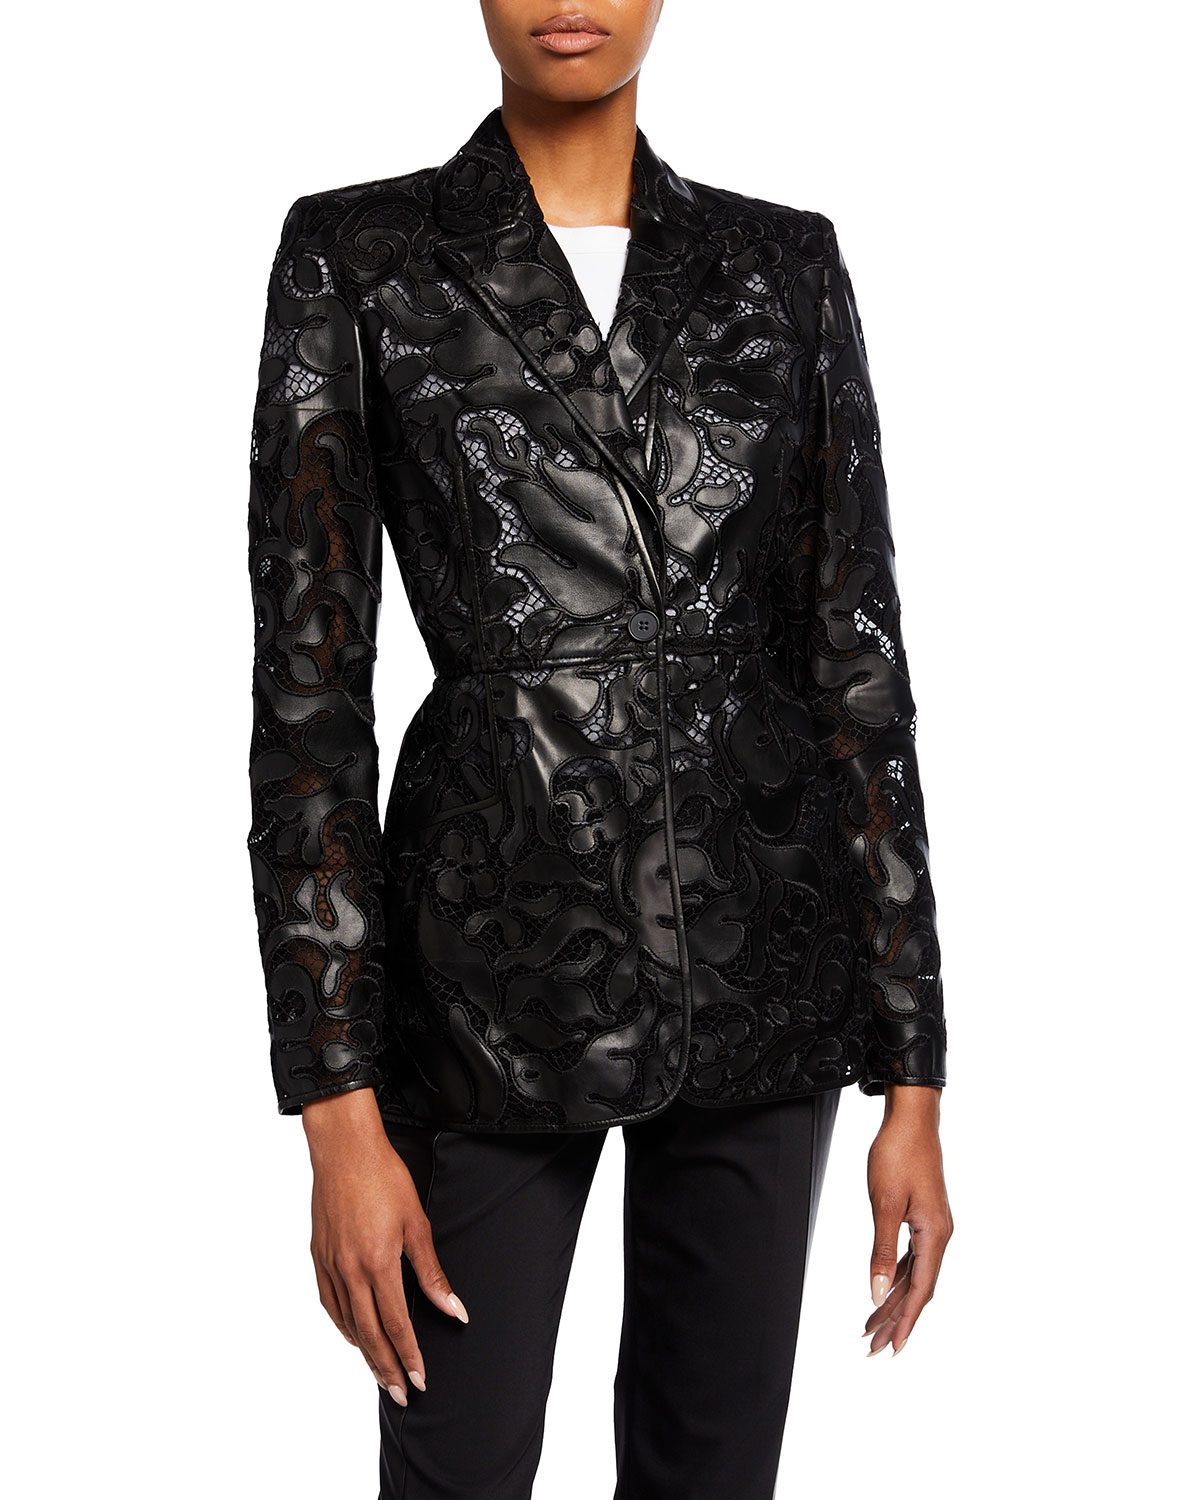 Alexander Mcqueen LEATHER SHEER-LACE JACKET